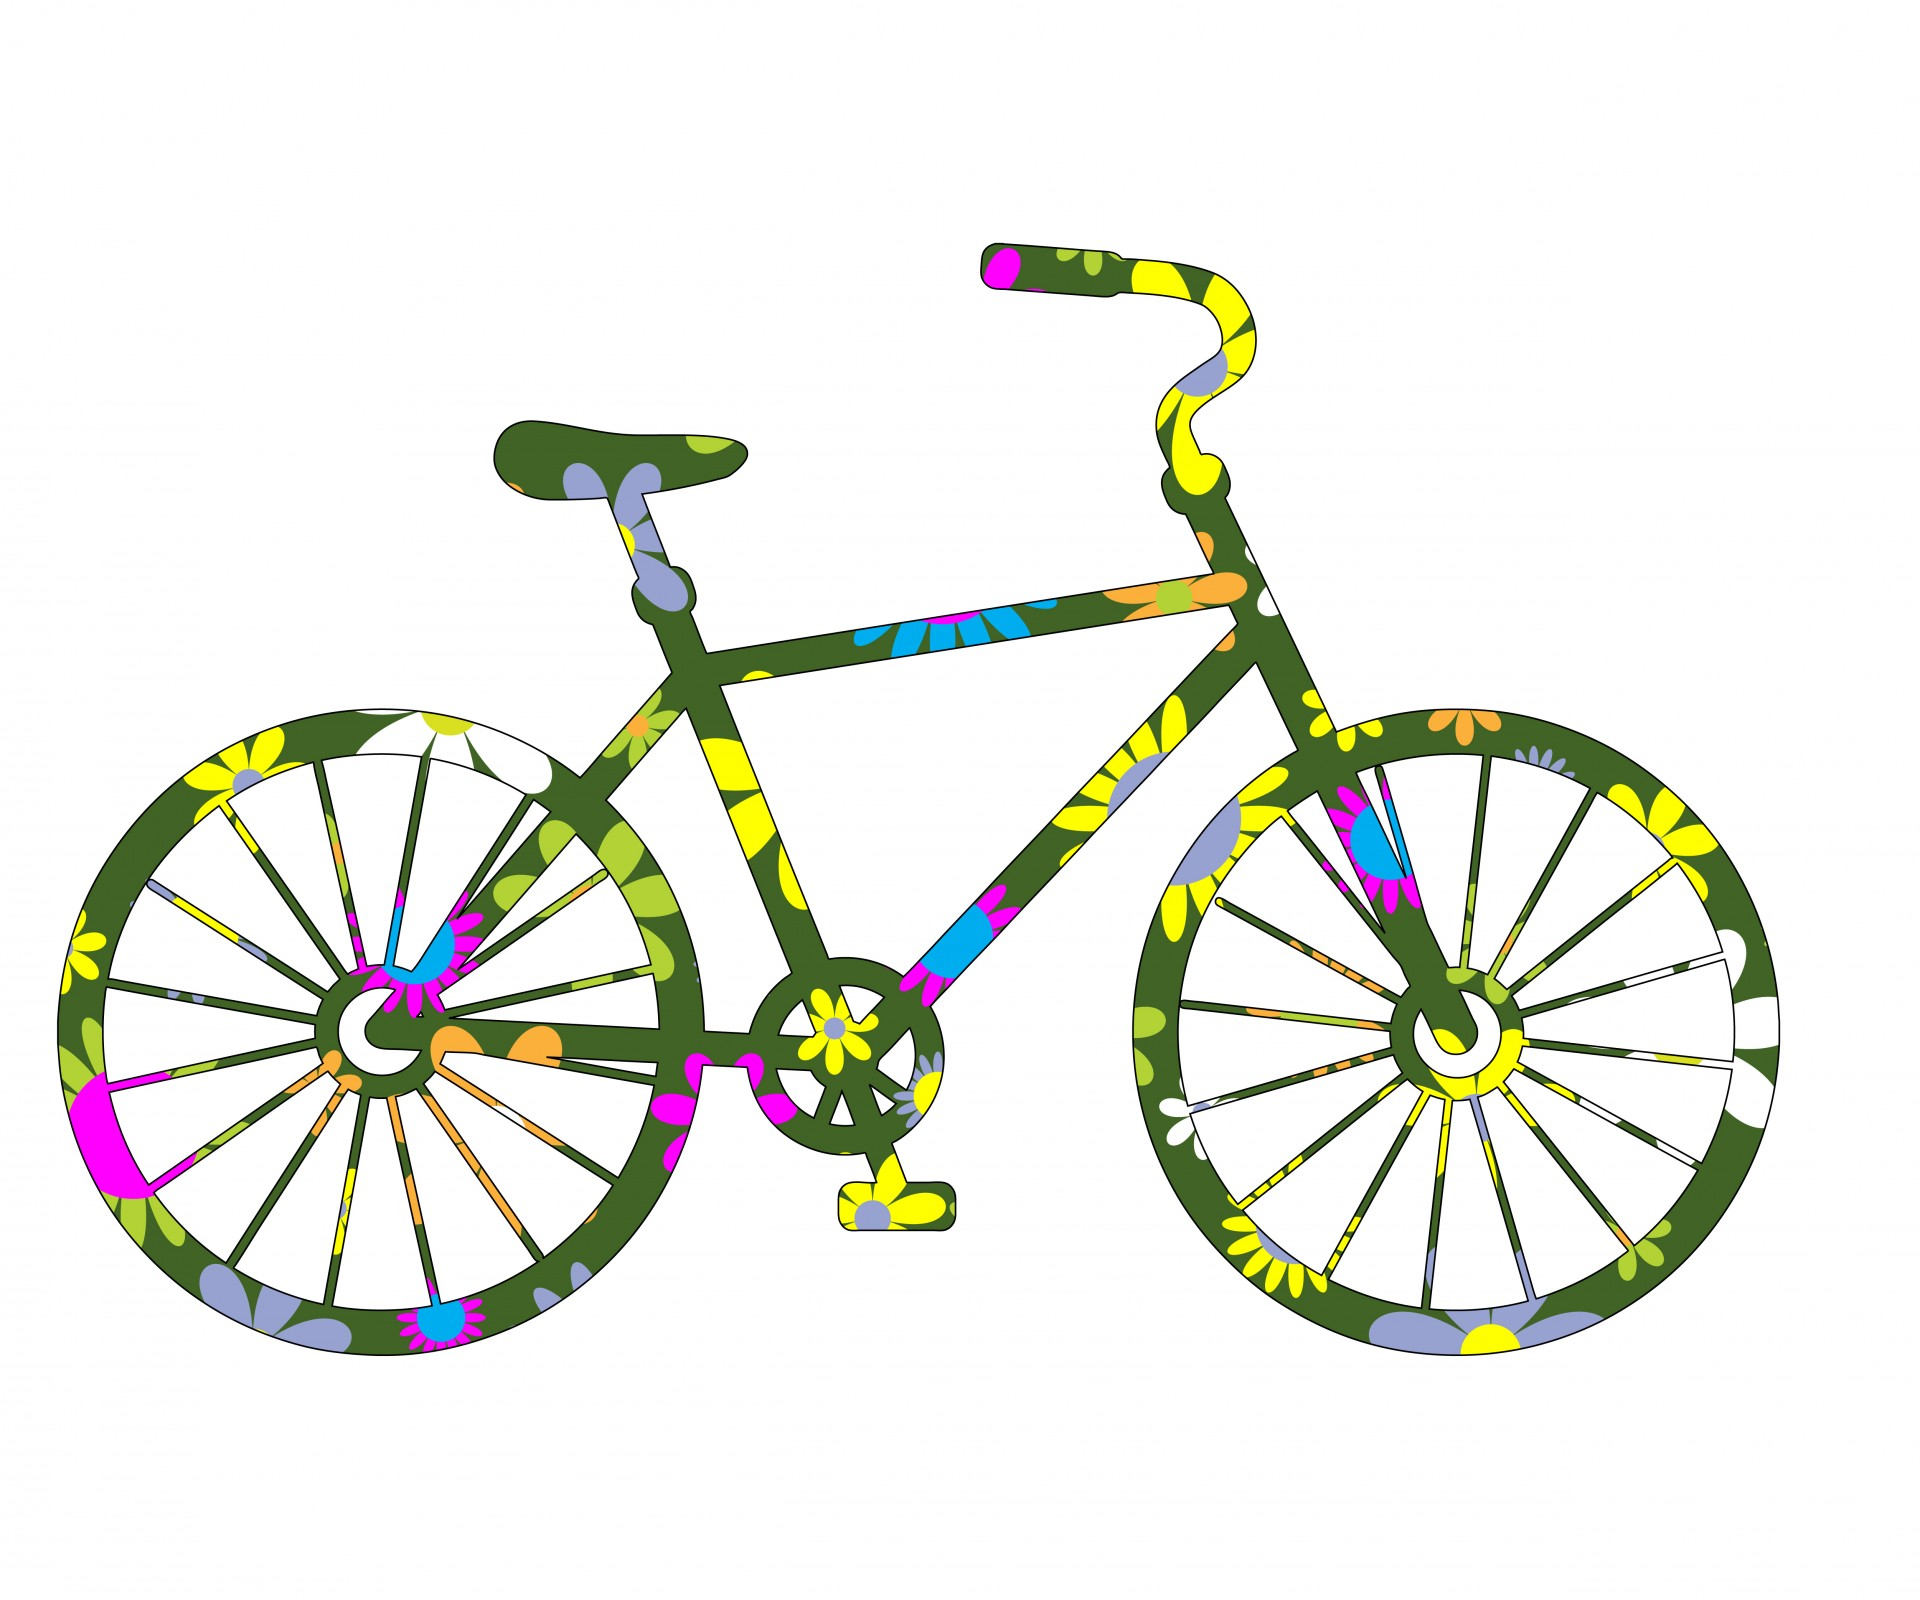 Bike clipart floral. Bicycle colorful pencil and